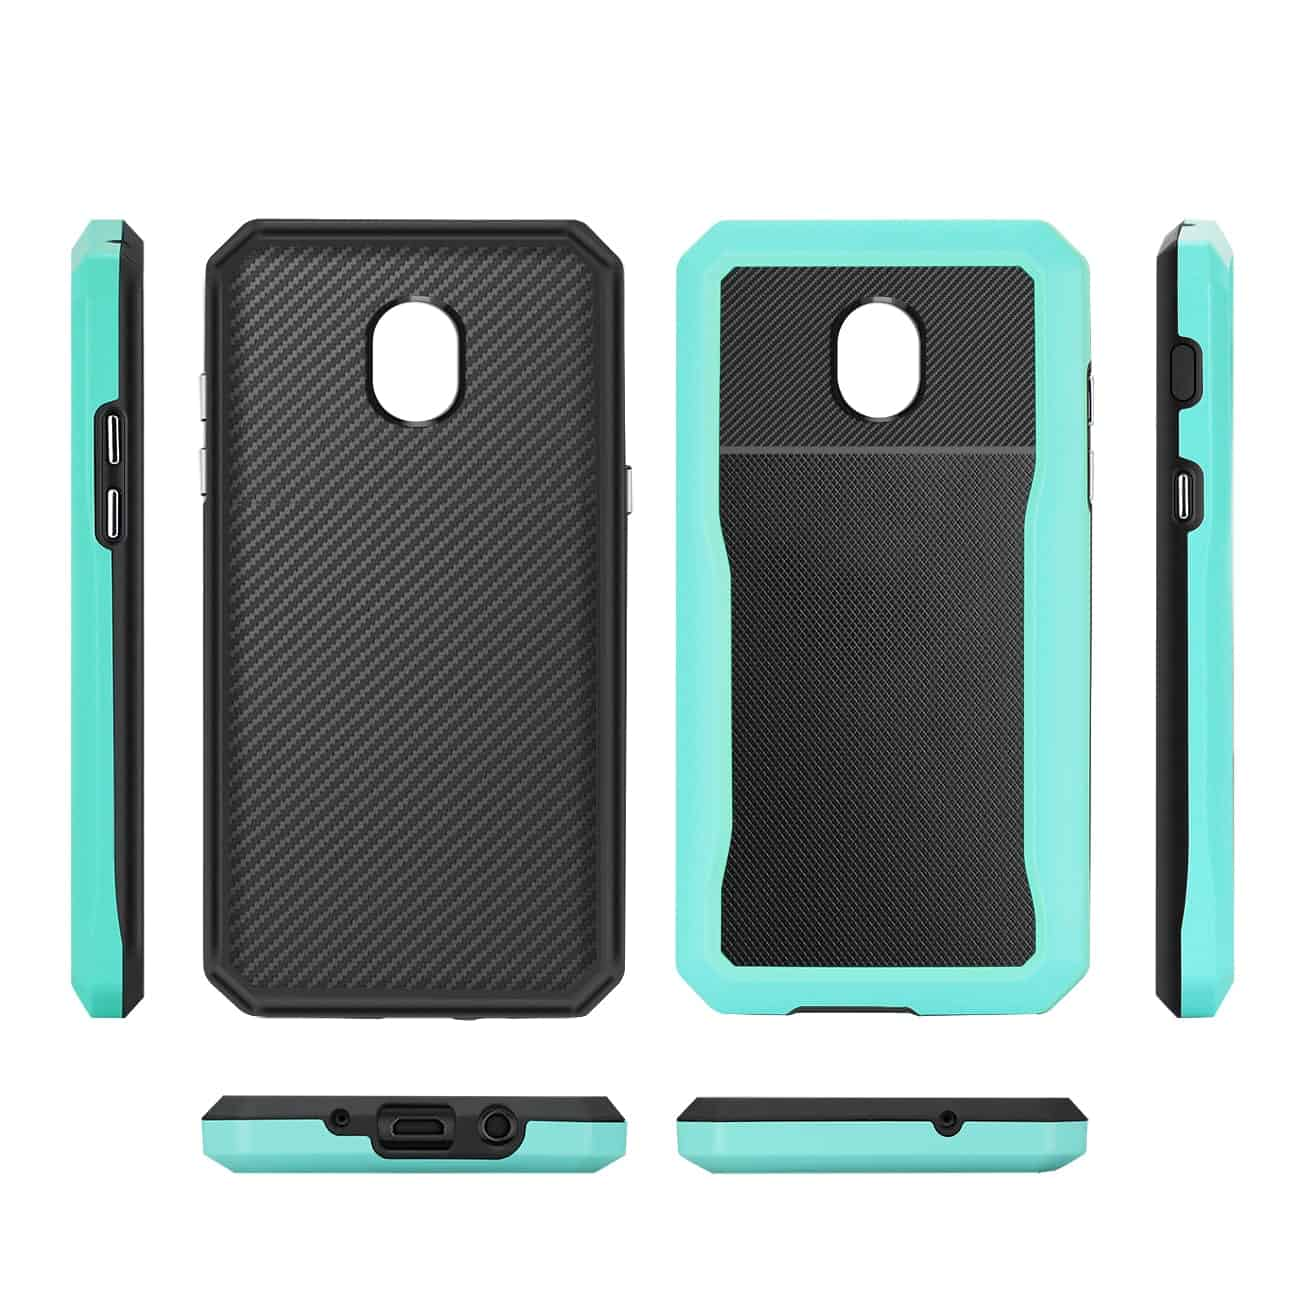 SAMSUNG GALAXY J3 (2018) Full Coverage Shockproof Case In Blue